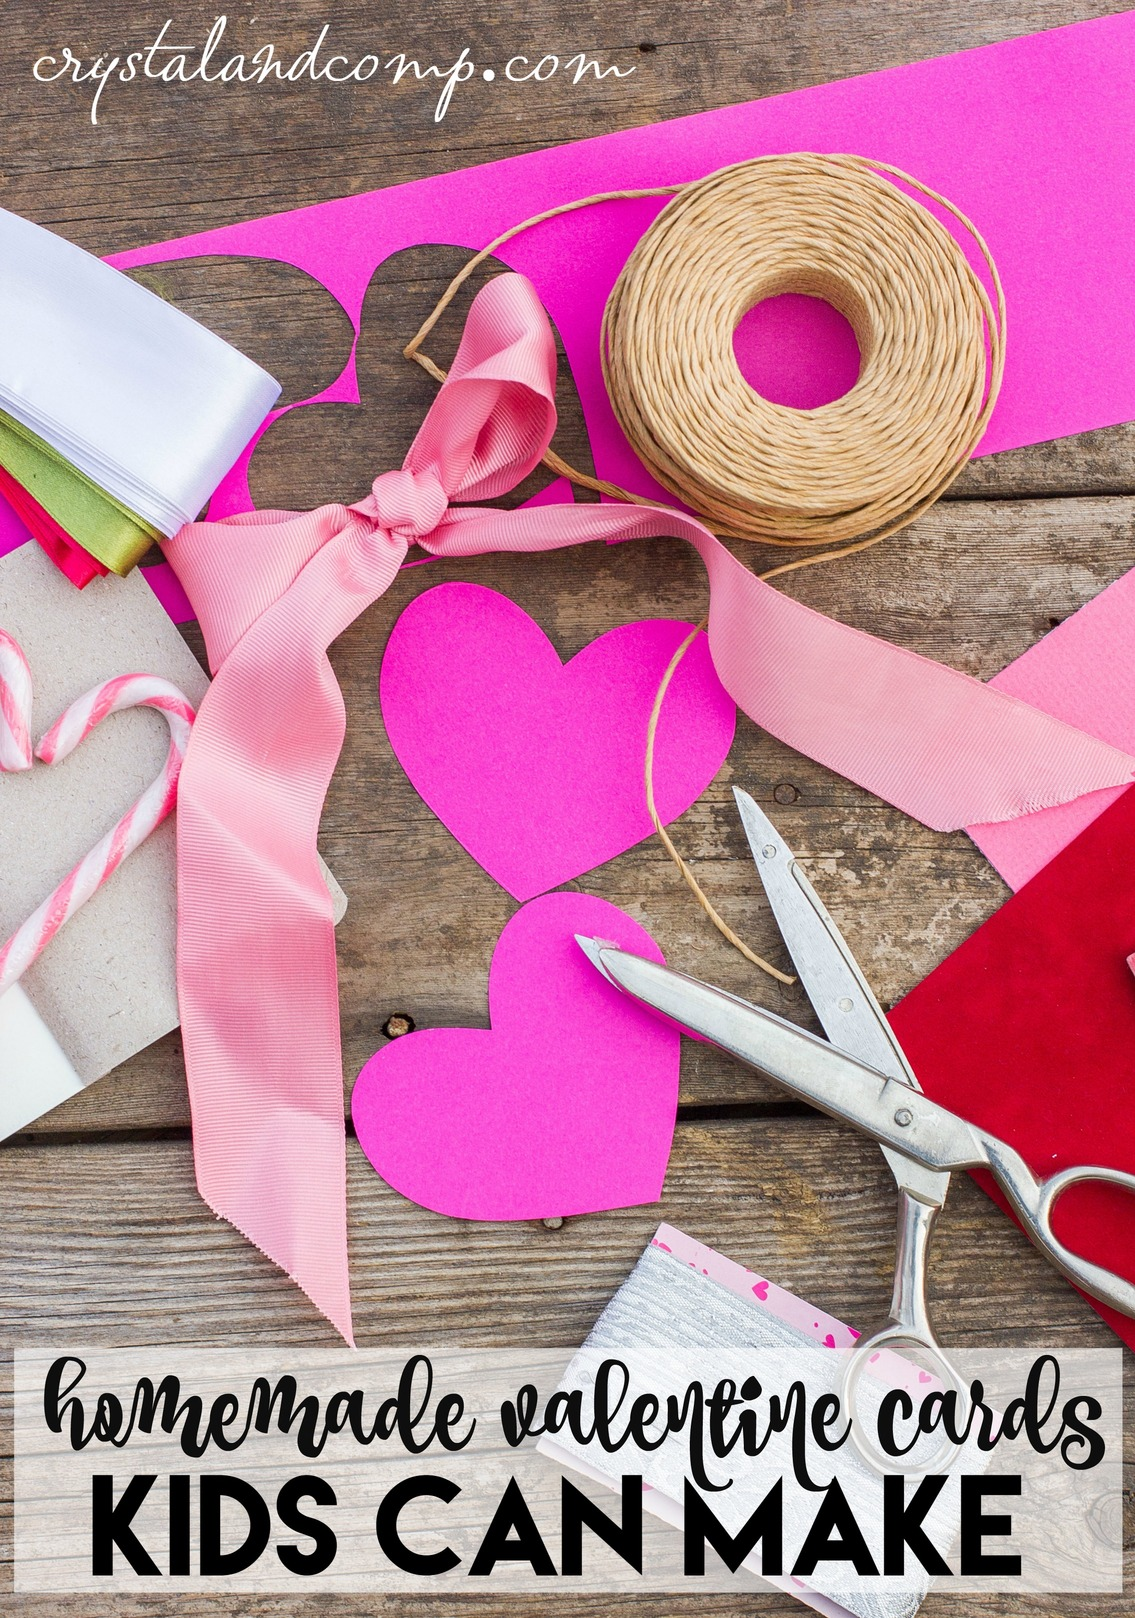 Homemade Valentine Cards for Kids – Creative Valentine Cards for School